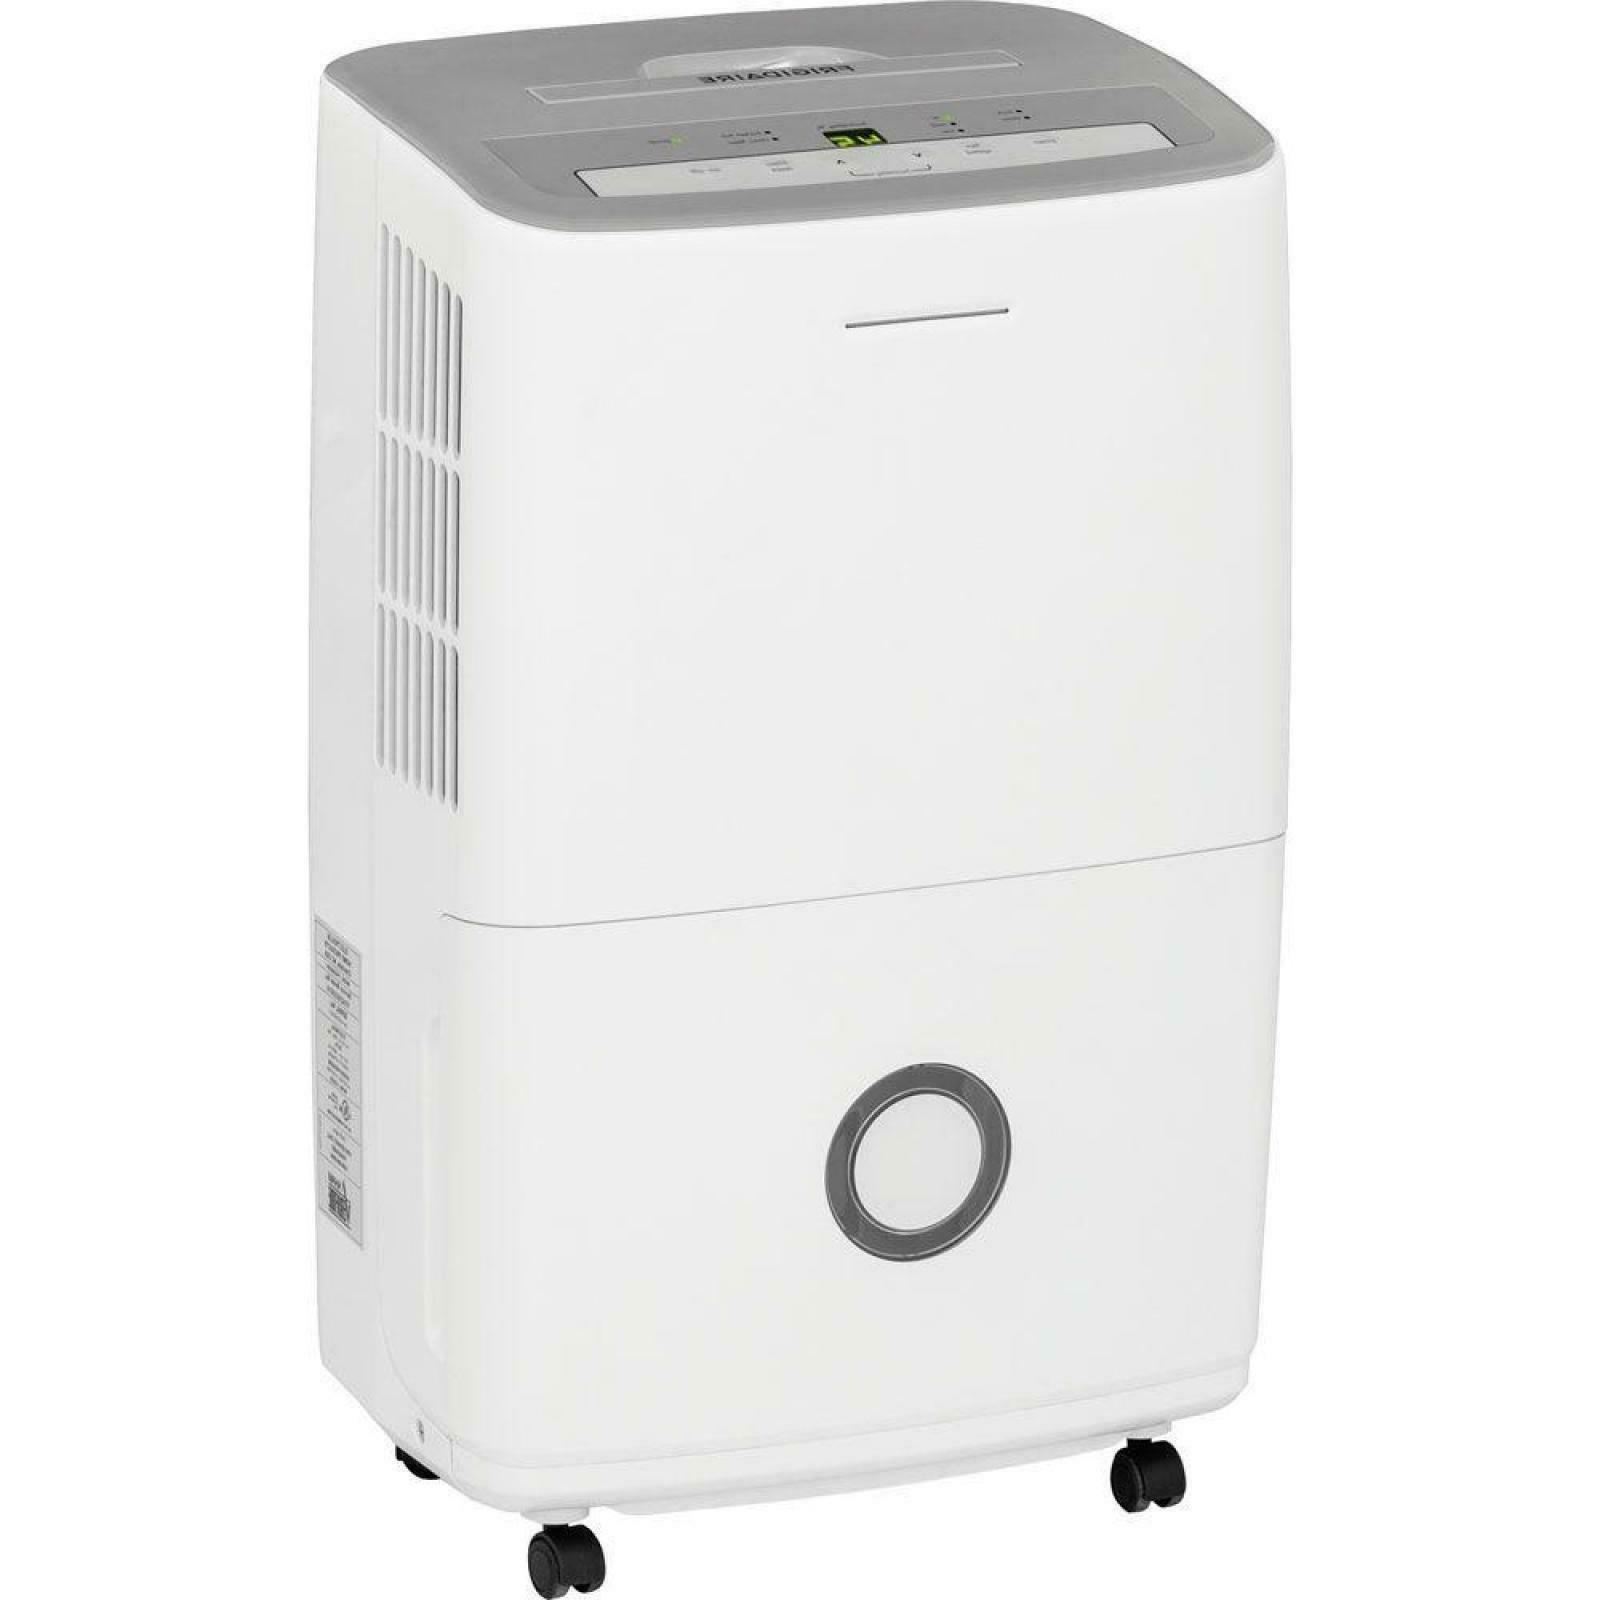 energy star 30 pint dehumidifier with effortless